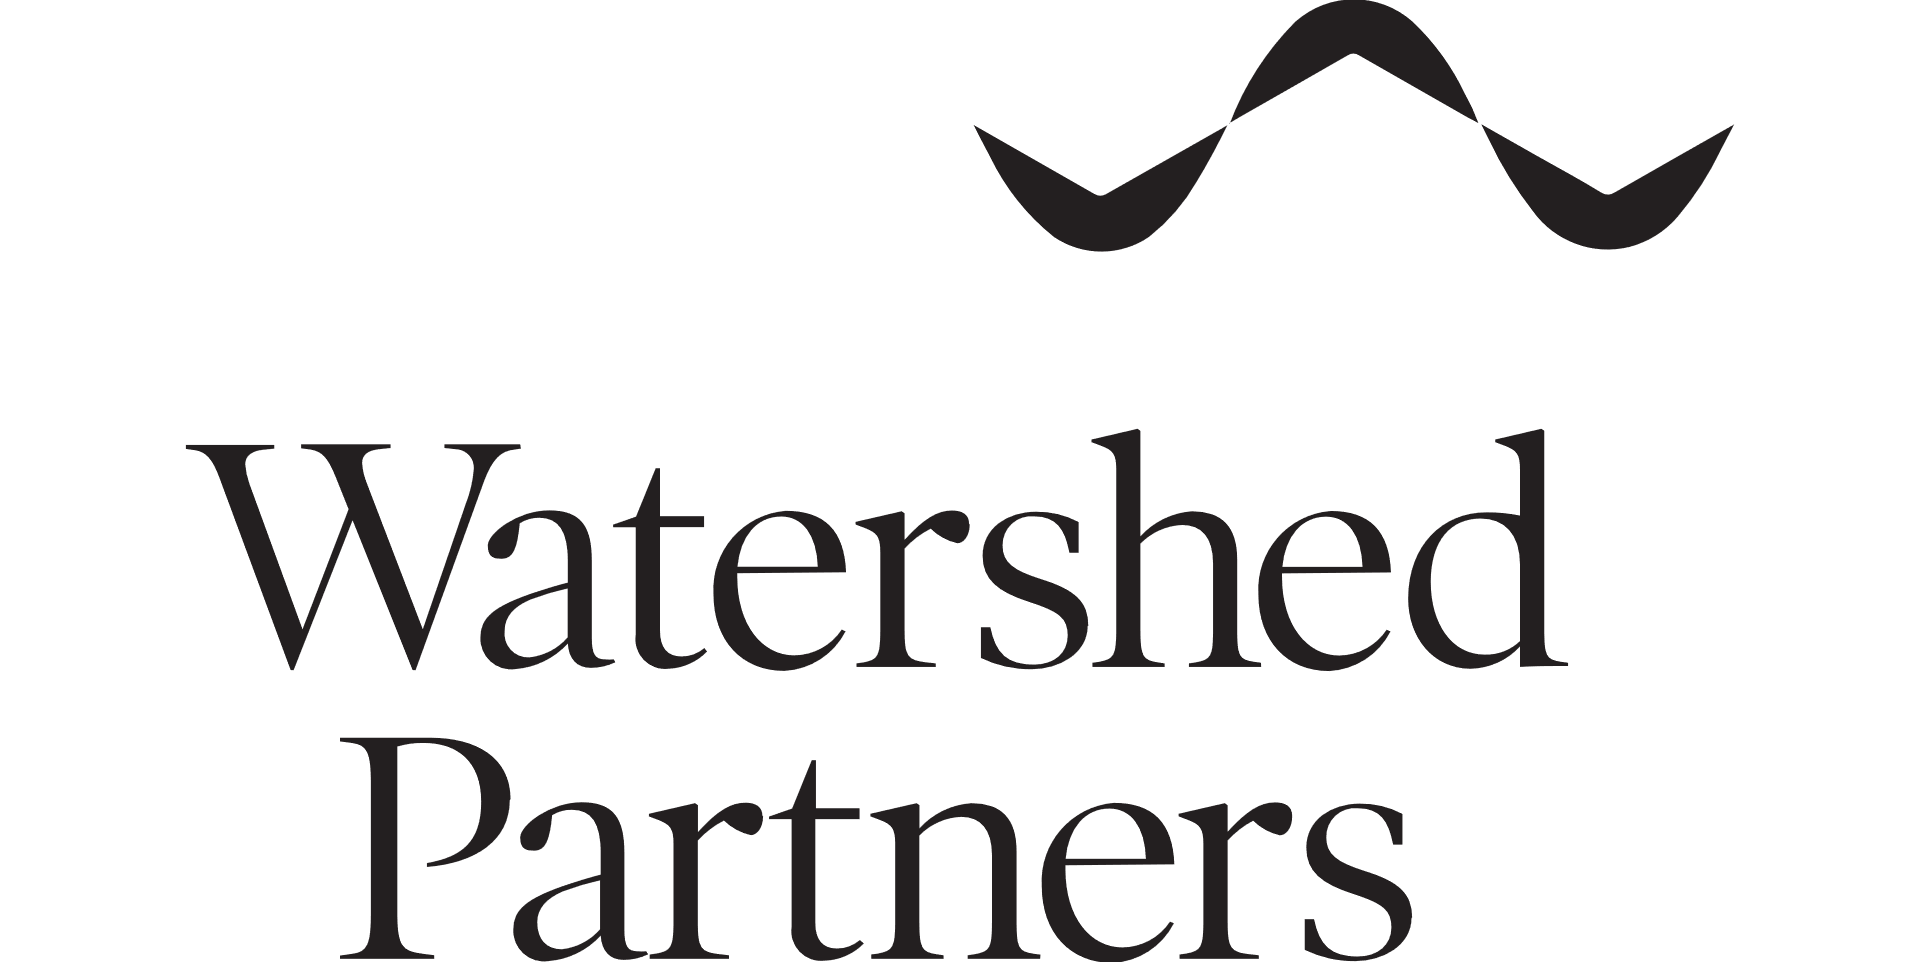 https://ppforum.ca/wp-content/uploads/2020/09/WatershedPartners-logo.png